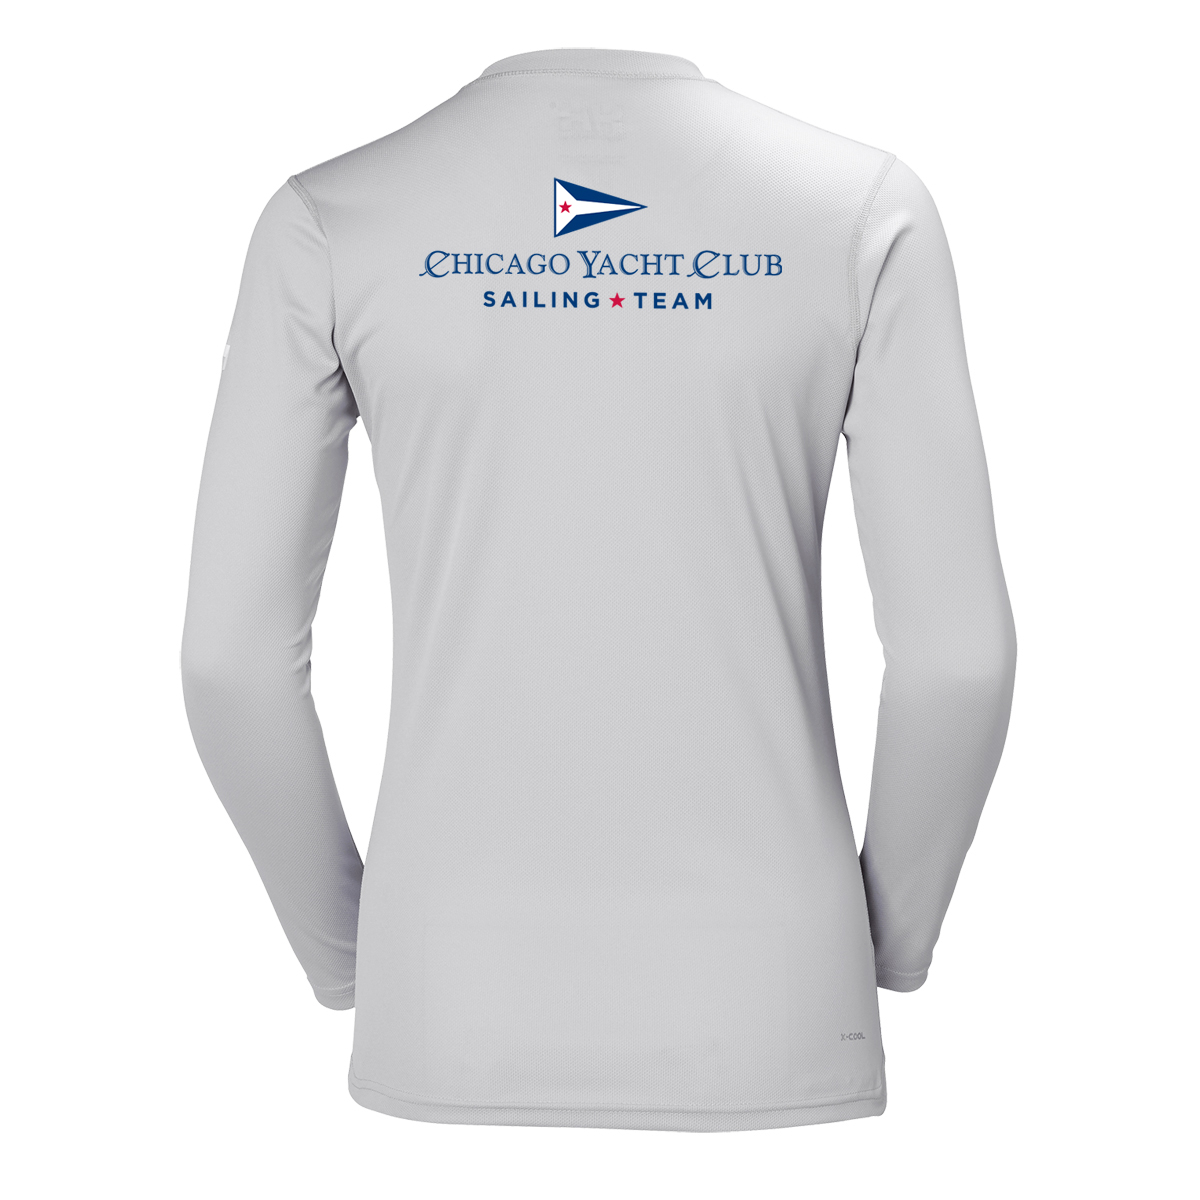 Chicago Yacht Club - Race Team Women's Helly Hansen L/S Tech Crew